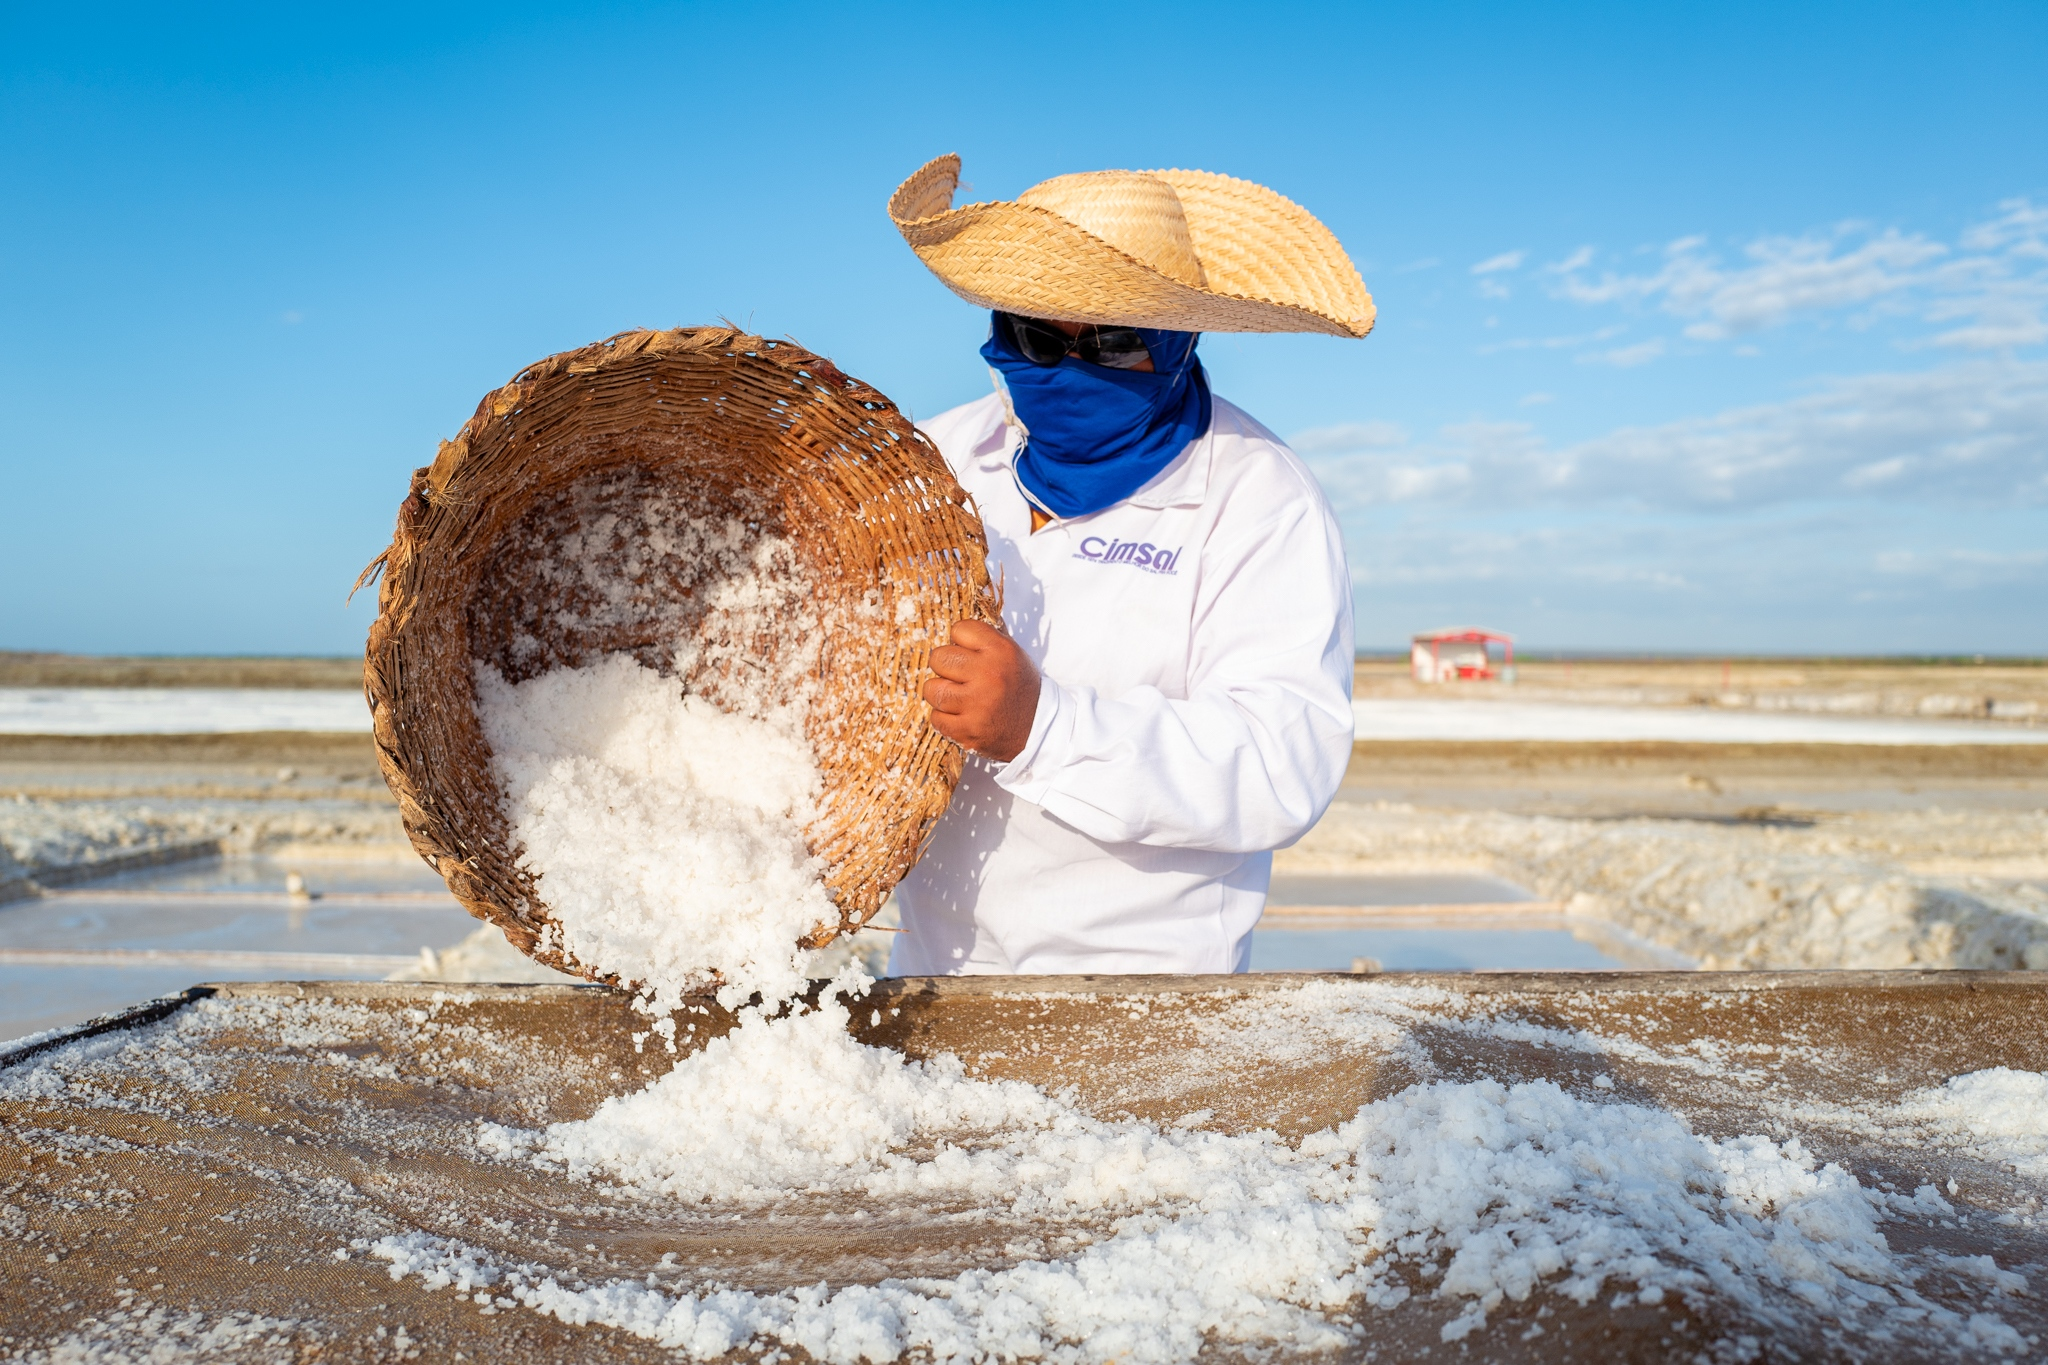 A worker collects a layer of salt on a farm in northern Brazil. By 2050, when climate change is expected to have a catastrophic effect on the world's geography, there will be winners and losers. Salt producers will benefit from the new scenario. For them, the hotter, the more salt they will produce. Mossoró, Rio Grande do Norte, Brazil.